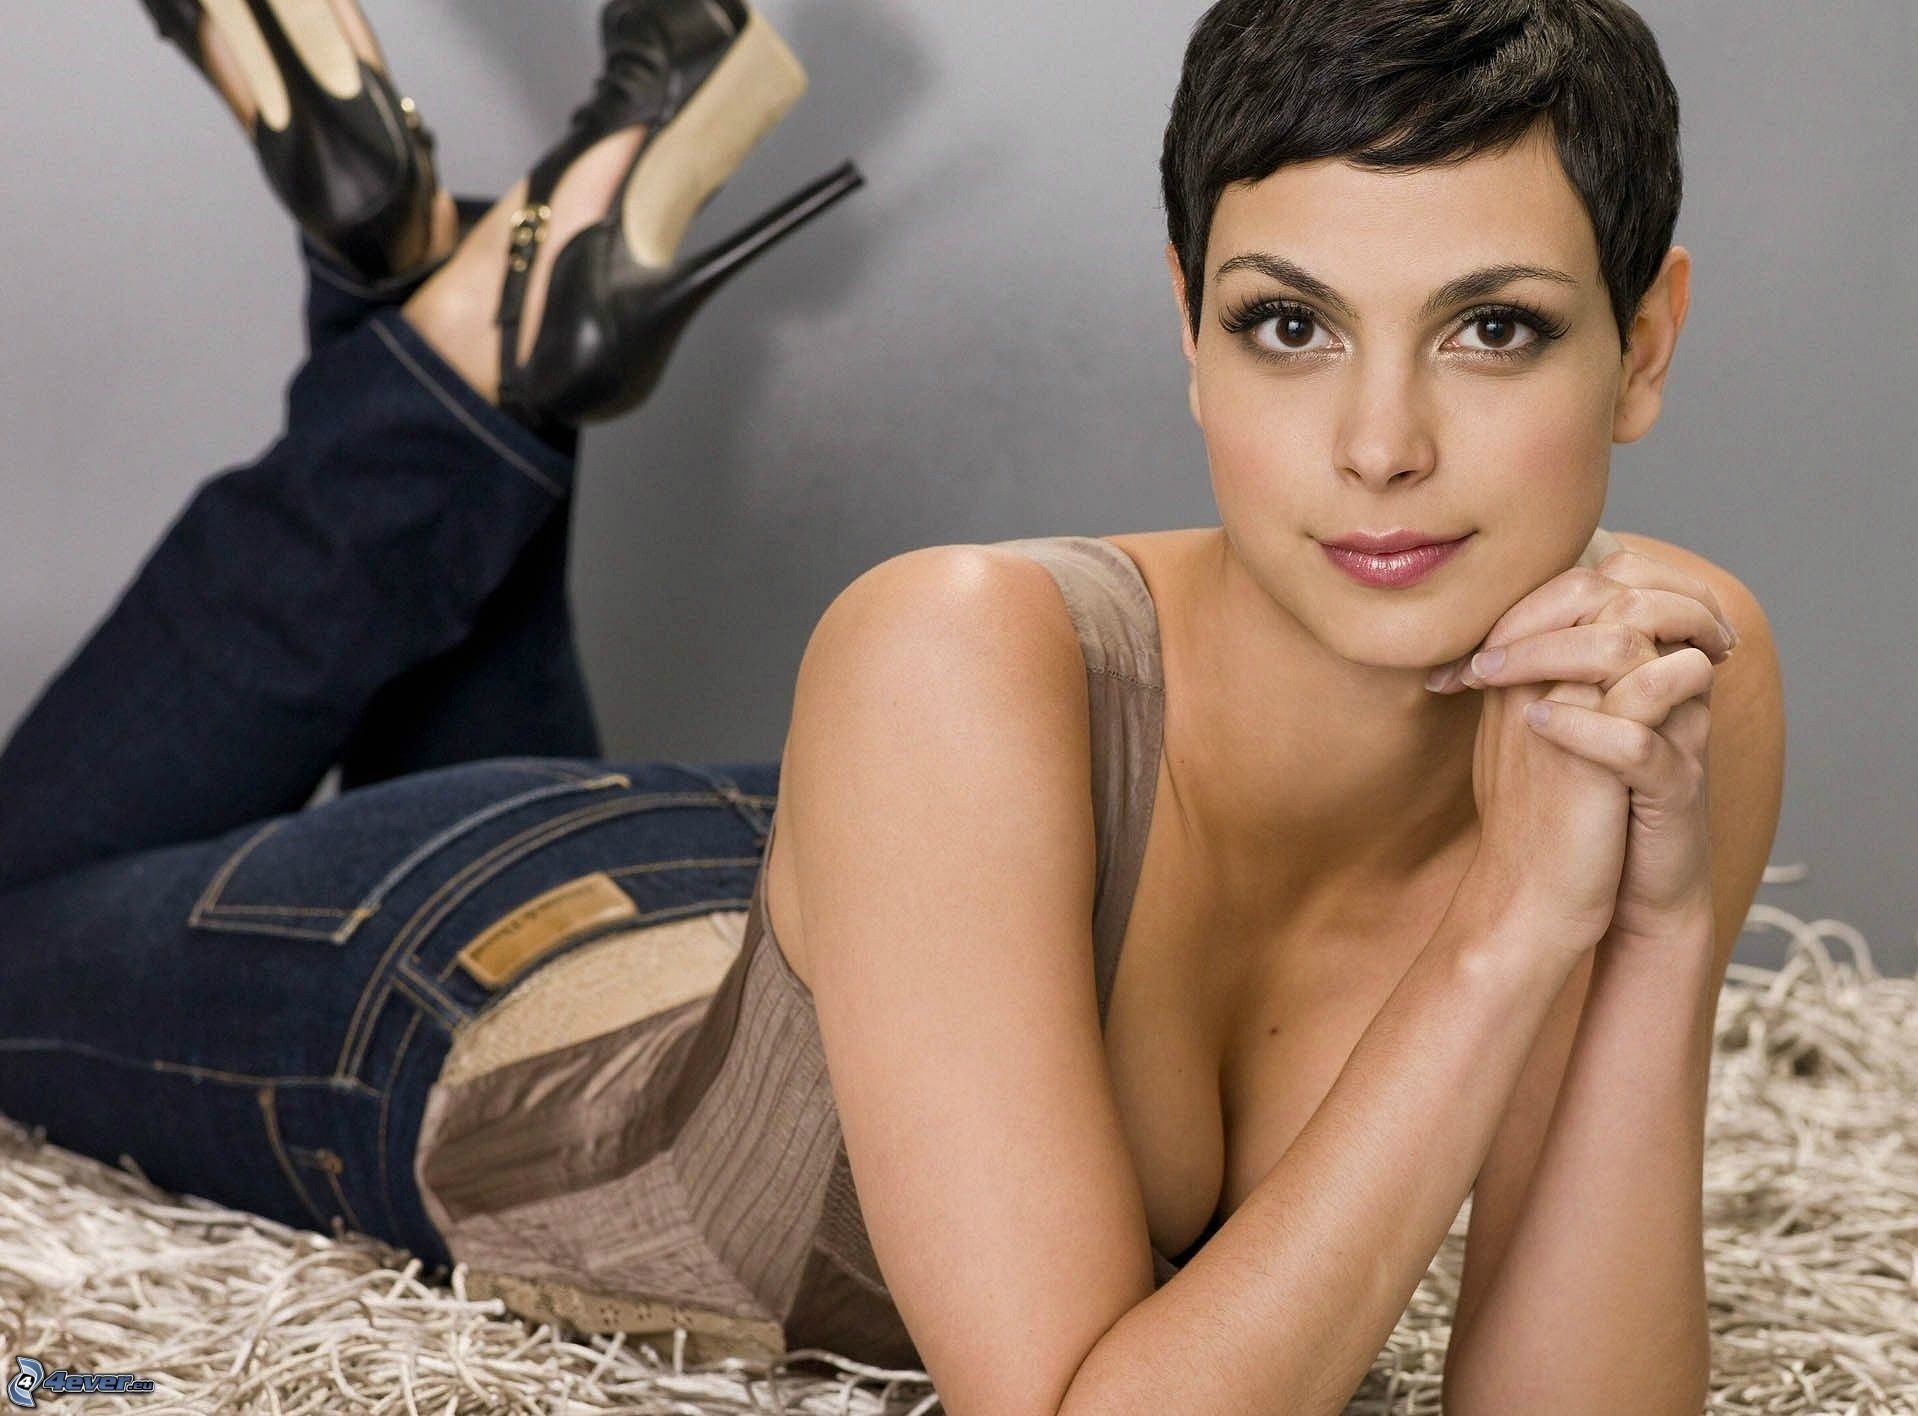 17 Best images about Morena Baccarin on Pinterest | Sexy, Models ...